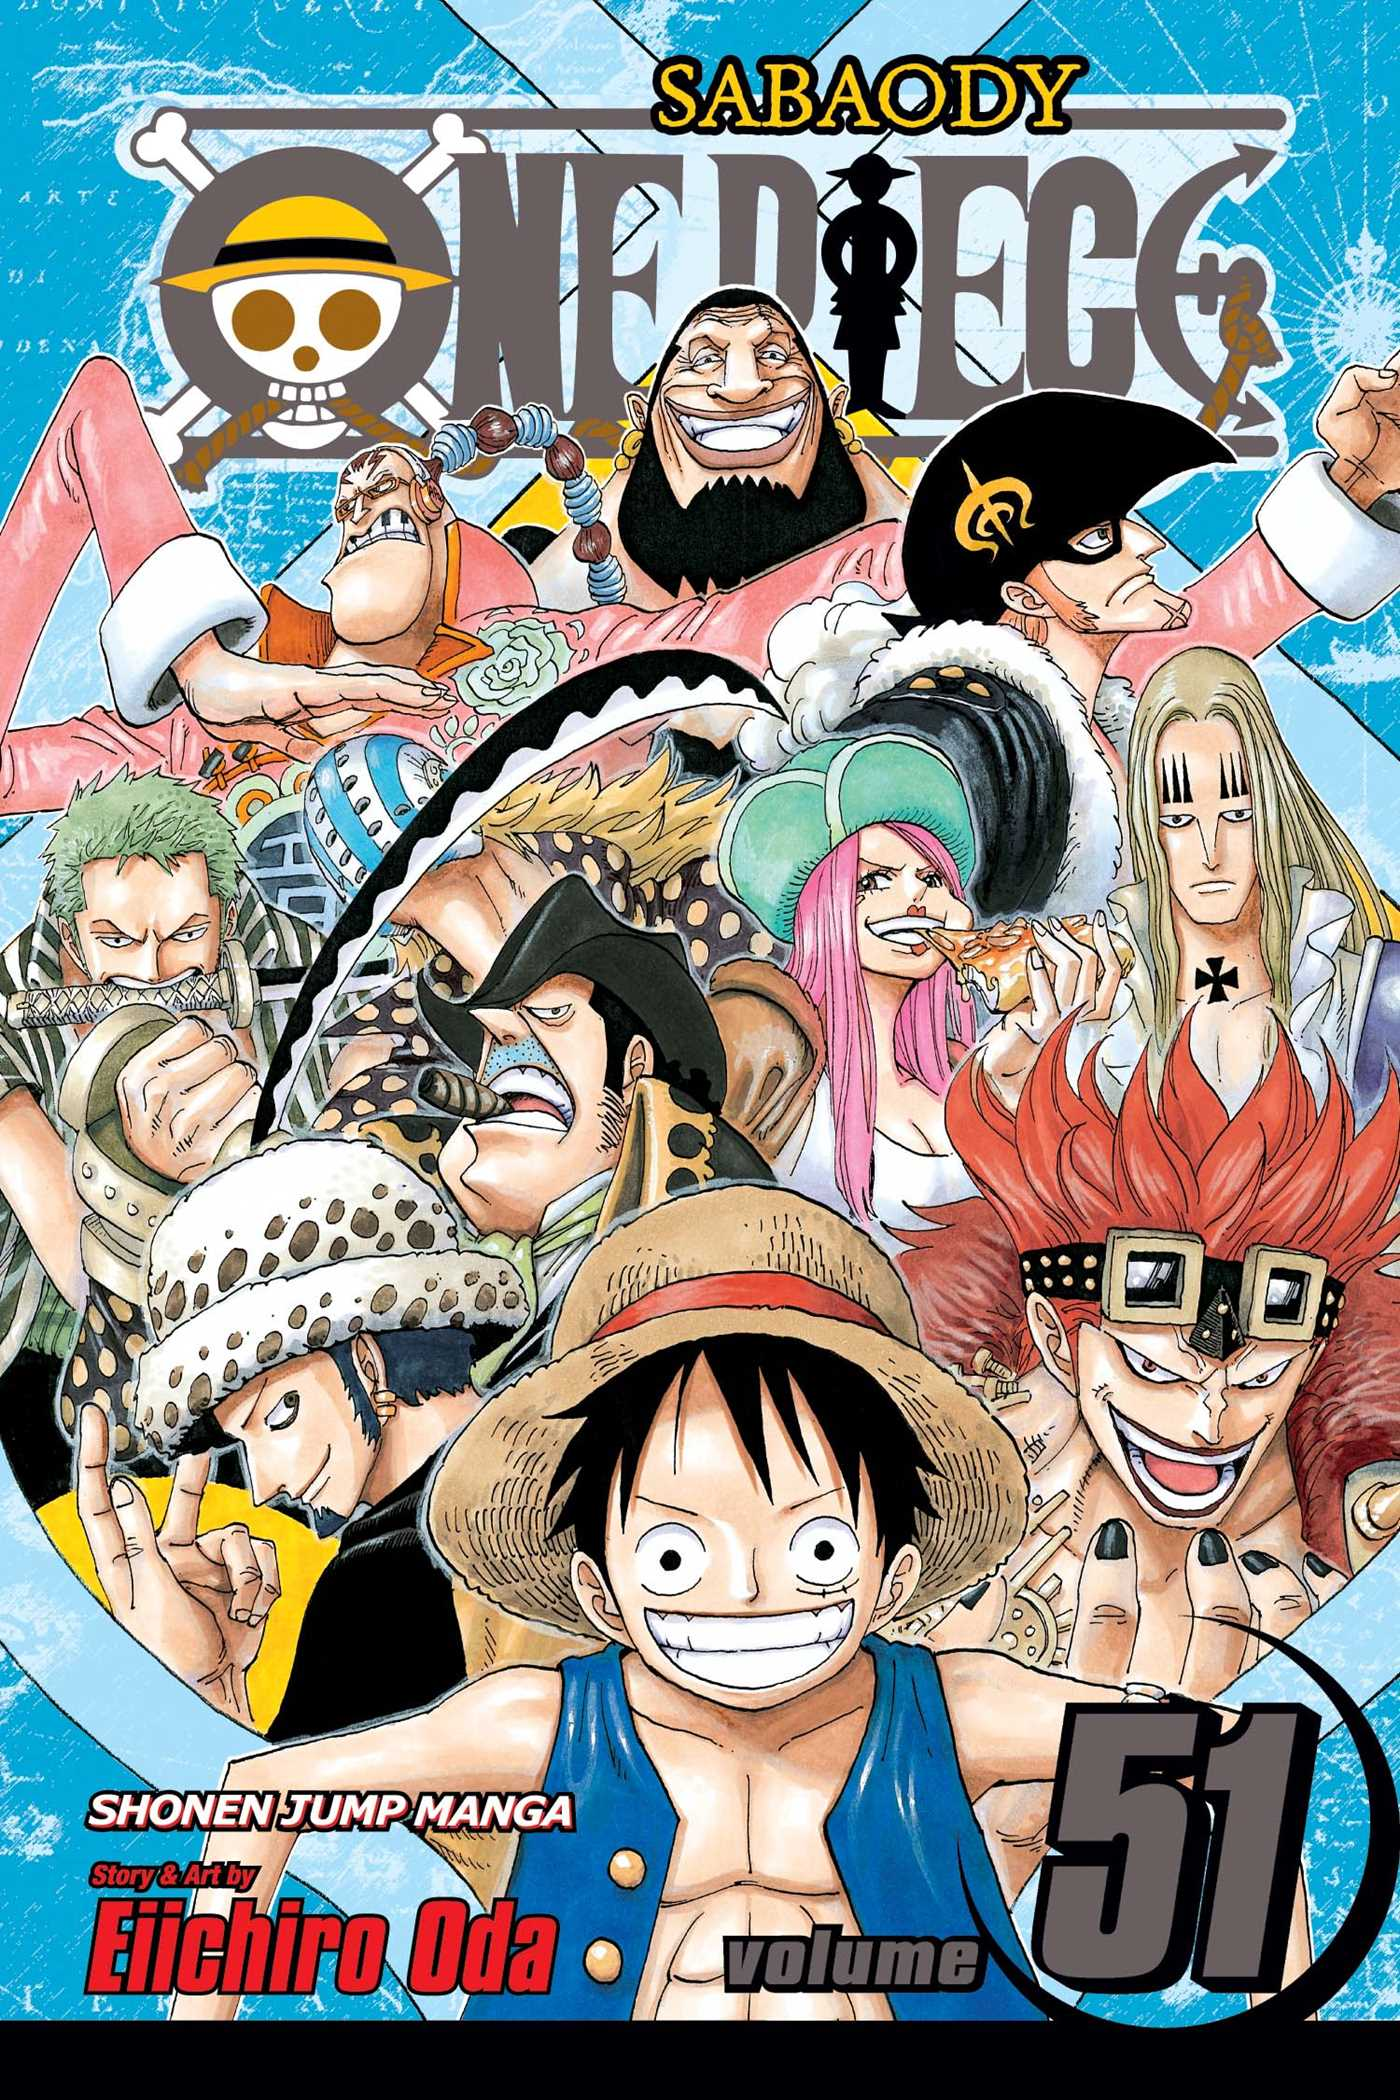 One-piece-vol-51-9781421534671_hr